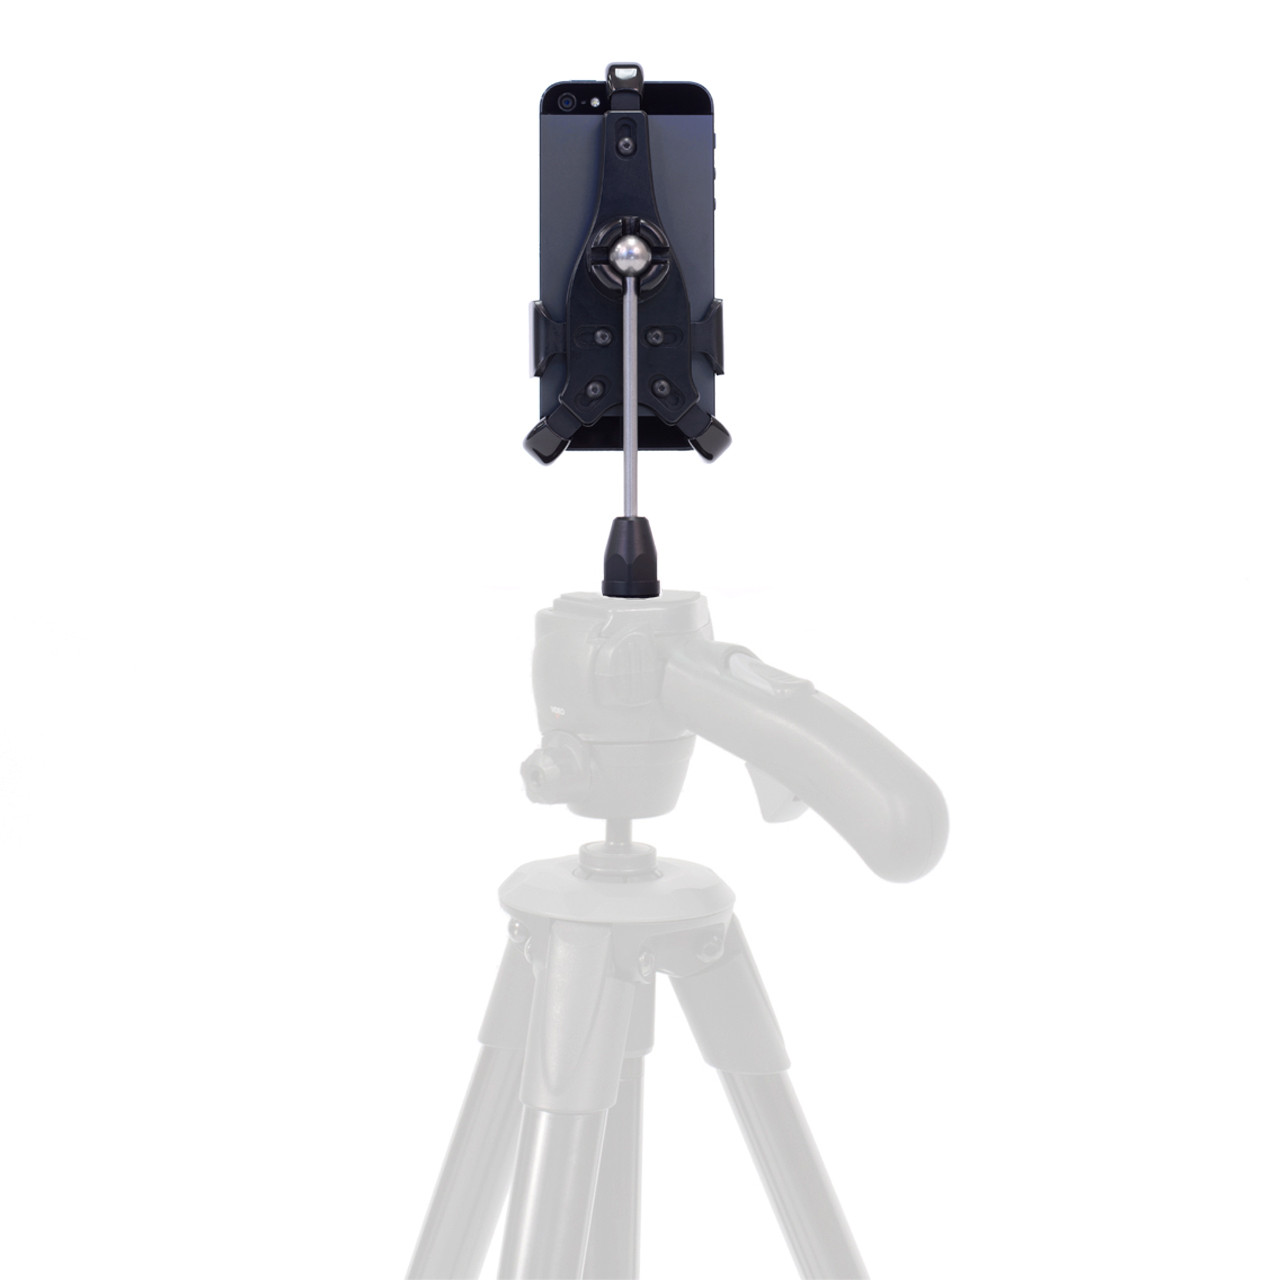 Mount your iPhone on your tripod